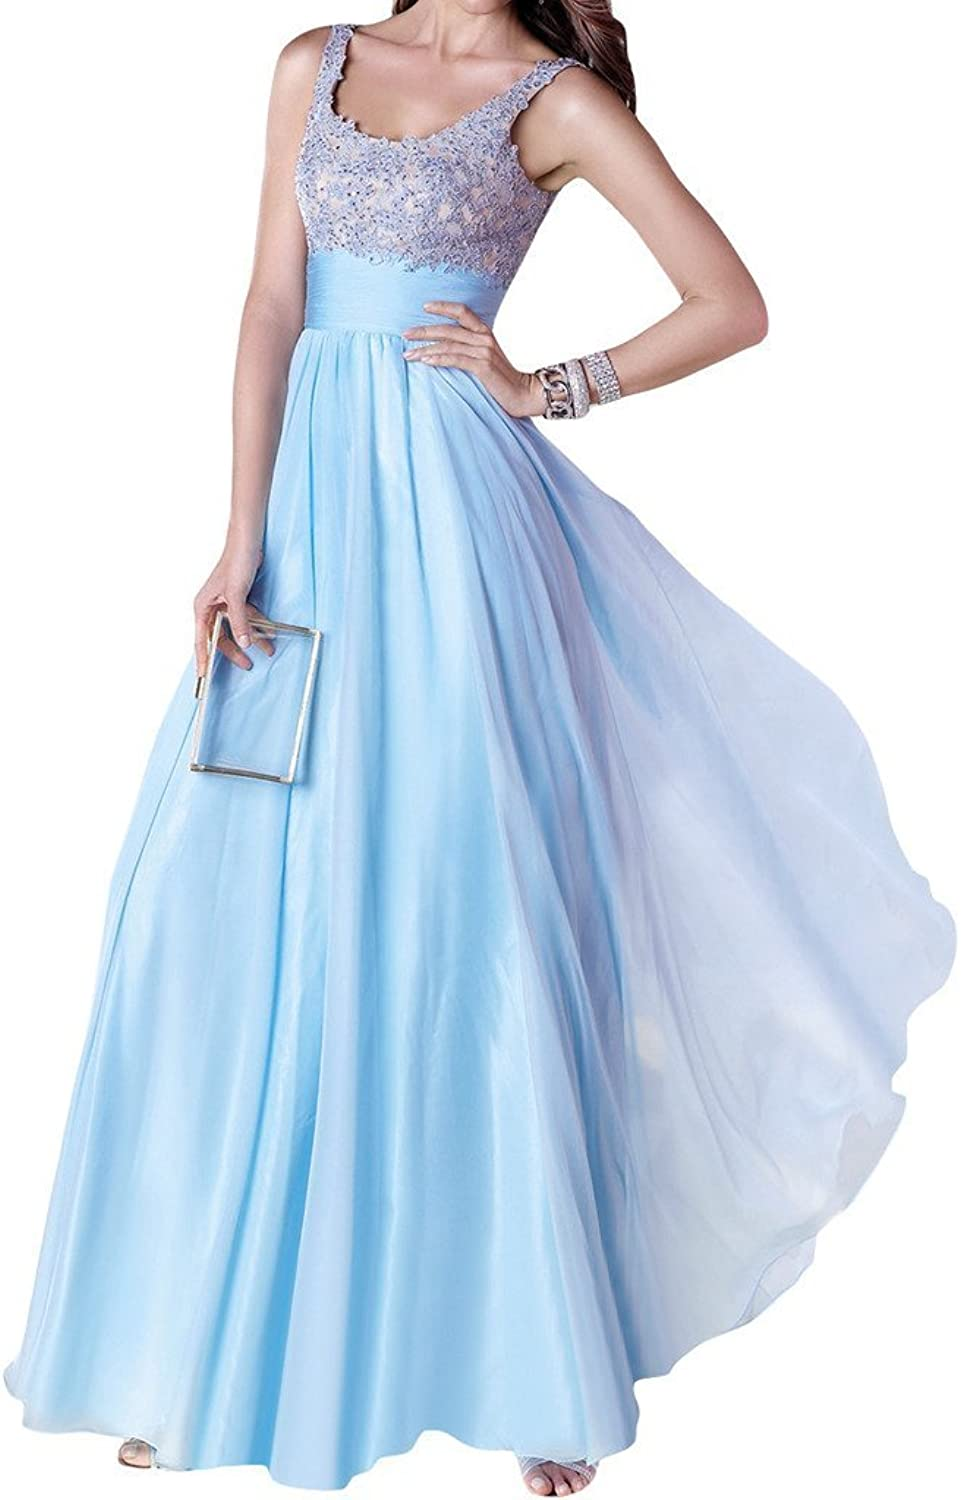 Angel Bride ALine Scoop Neck Christmas Evening Party Dresses Prom Dresses for Pageant